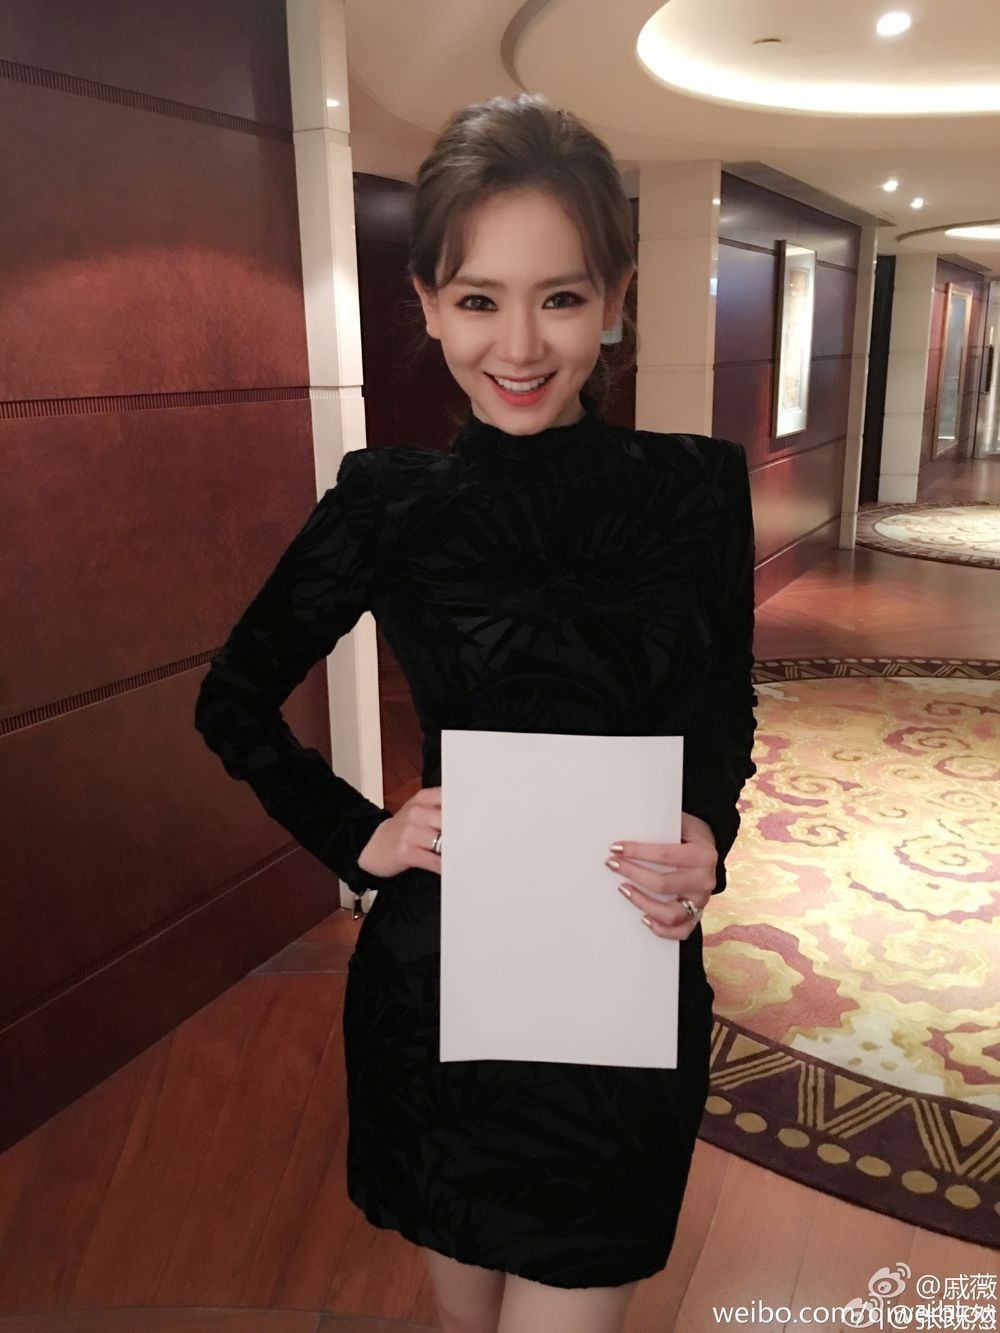 Image from Weibo